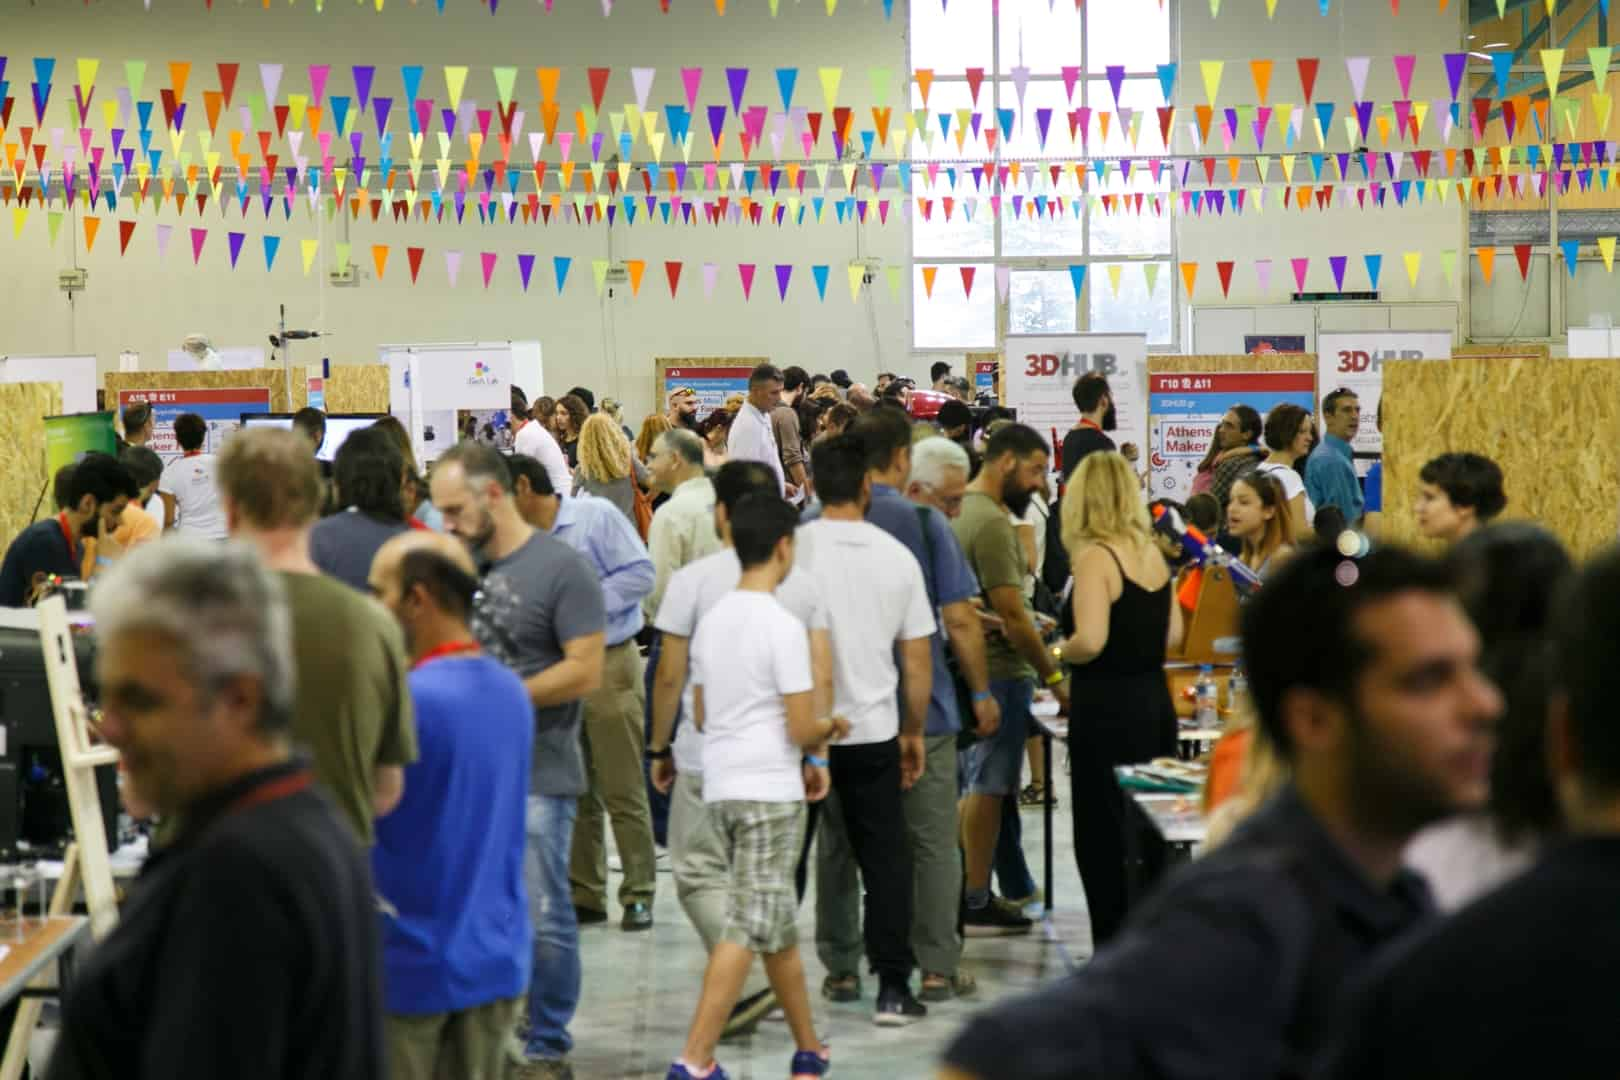 Athens Mini Maker Faire 2017 - Έλα να δεις, να μάθεις, να φτιάξεις! 2